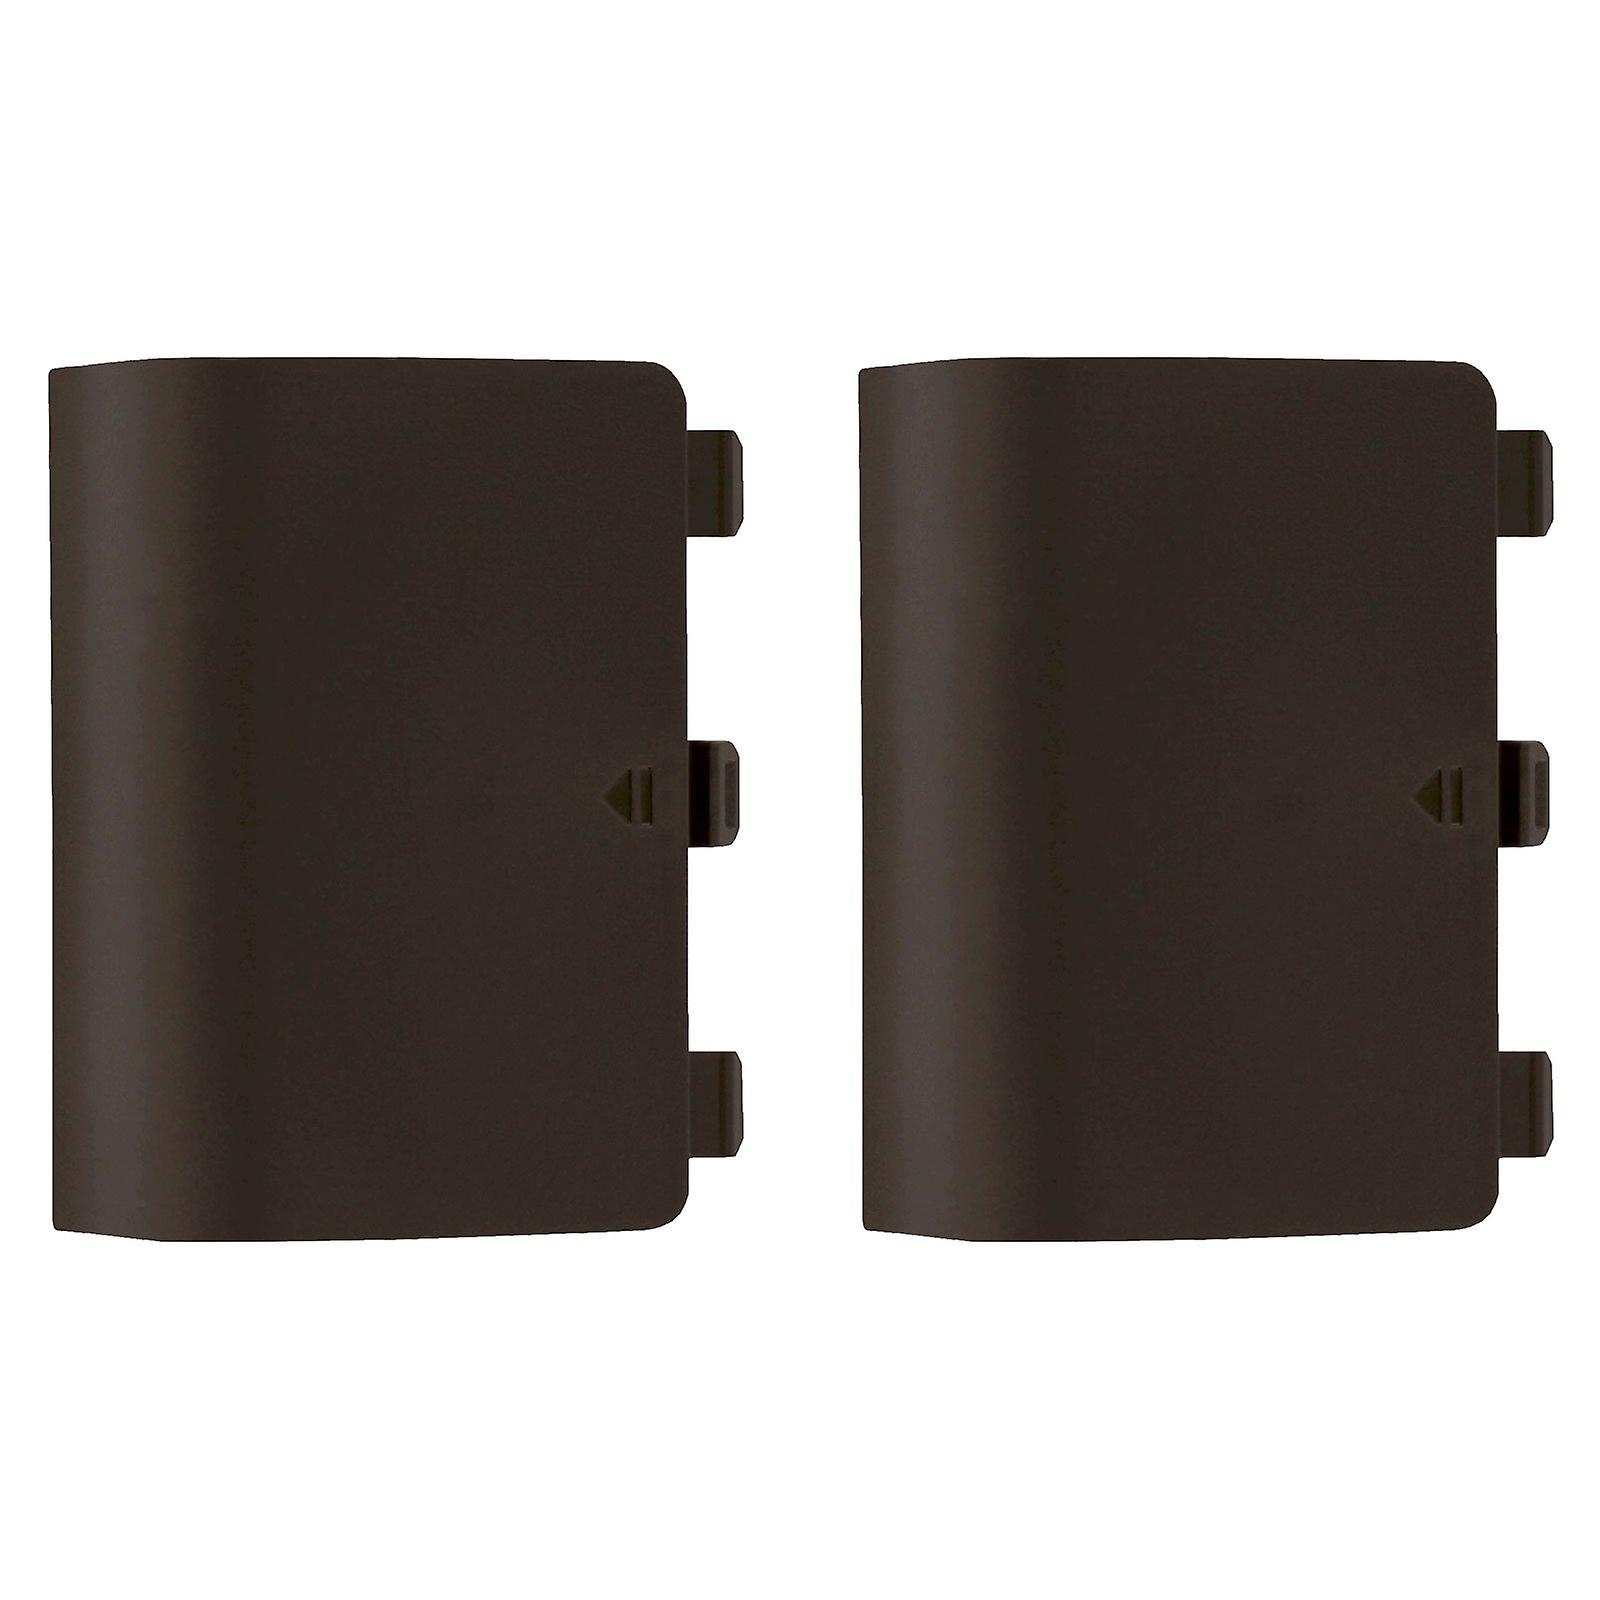 Replacement battery back cover holder for green/orange microsoft xbox one controllers - 2 pack brown